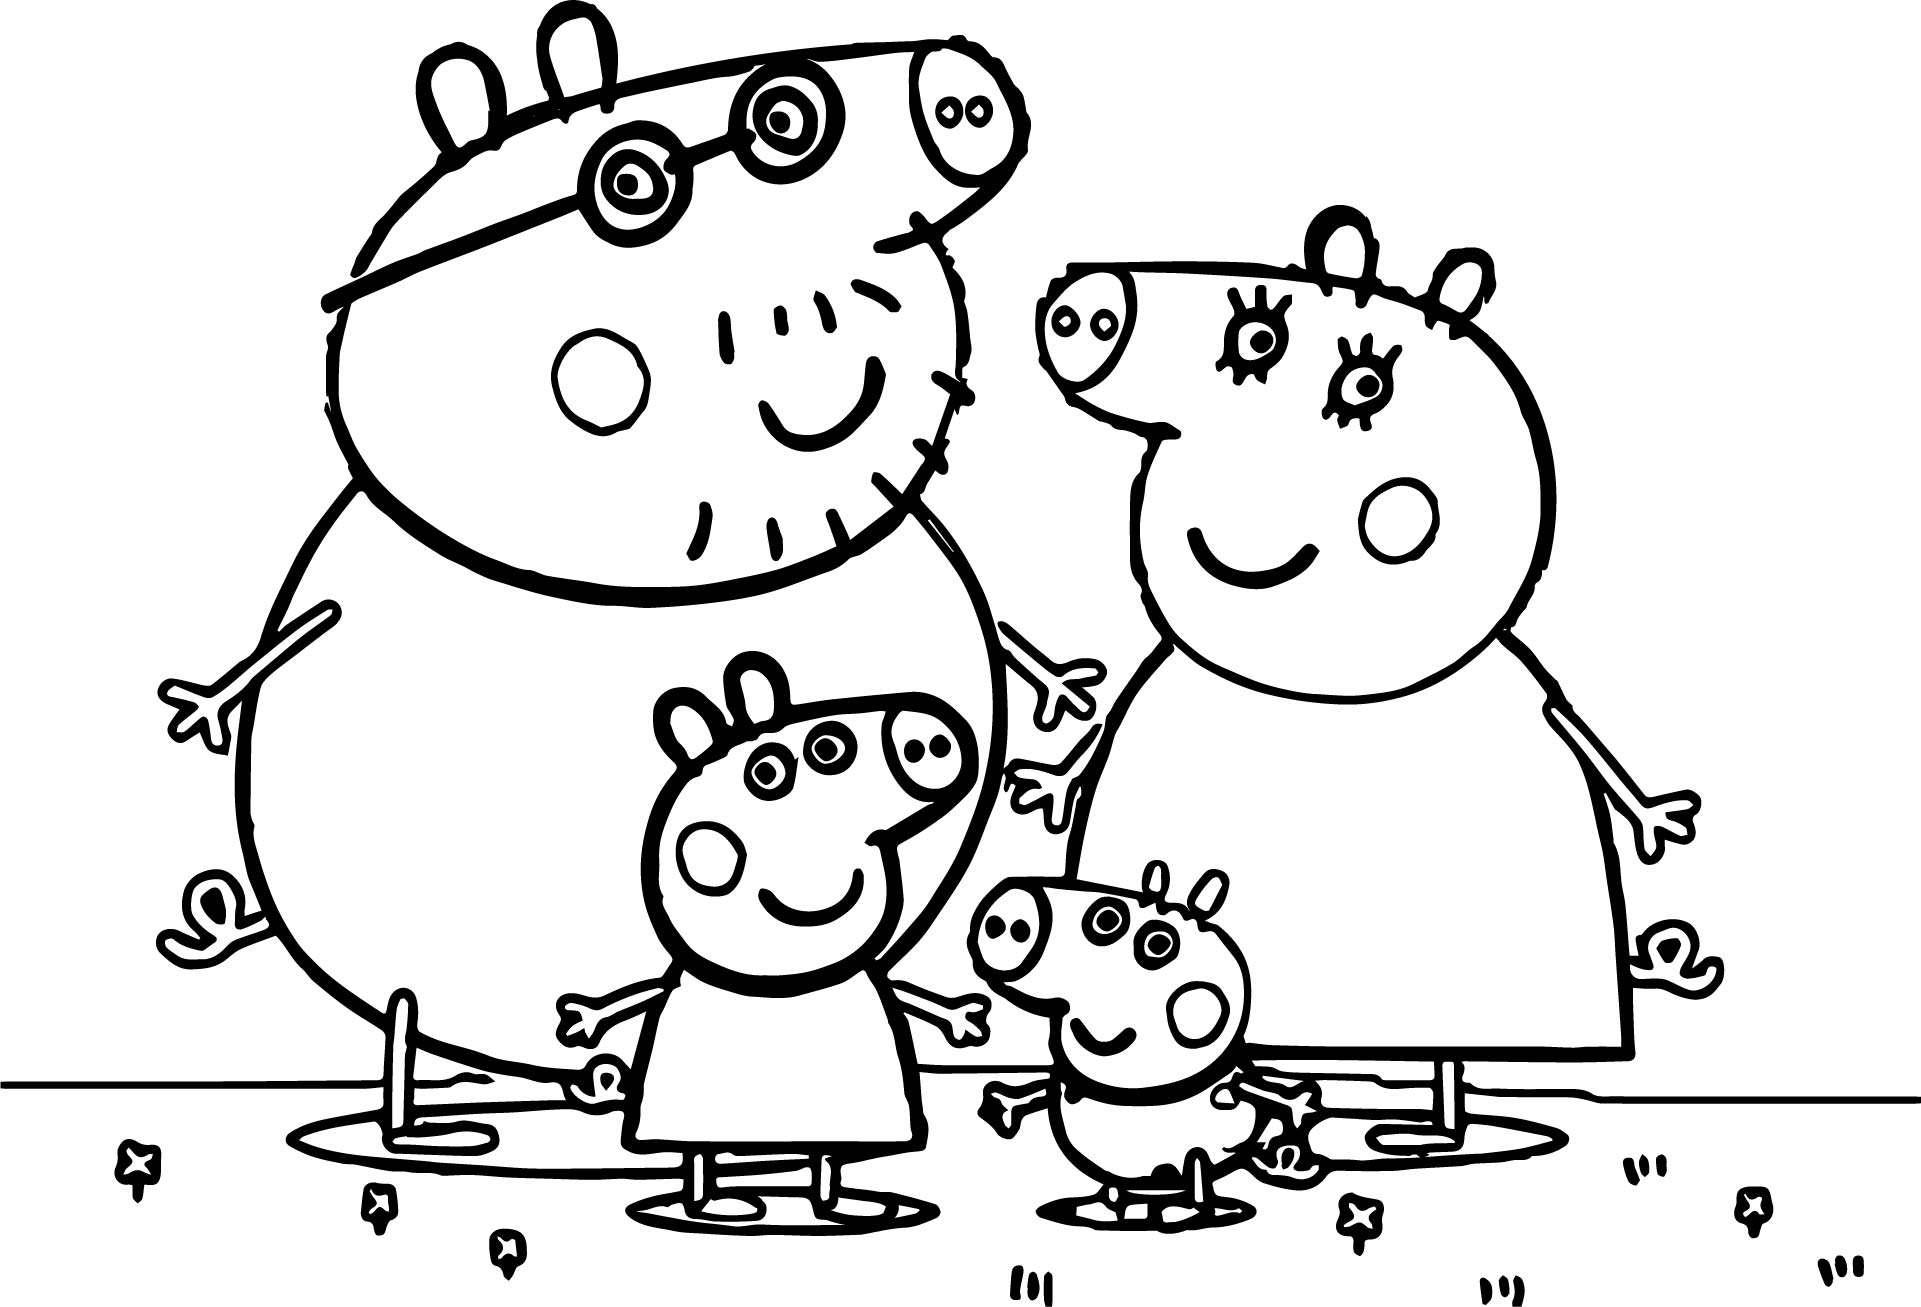 Peppa pig family coloring pages sketch coloring page for Peppa pig coloring pages pdf